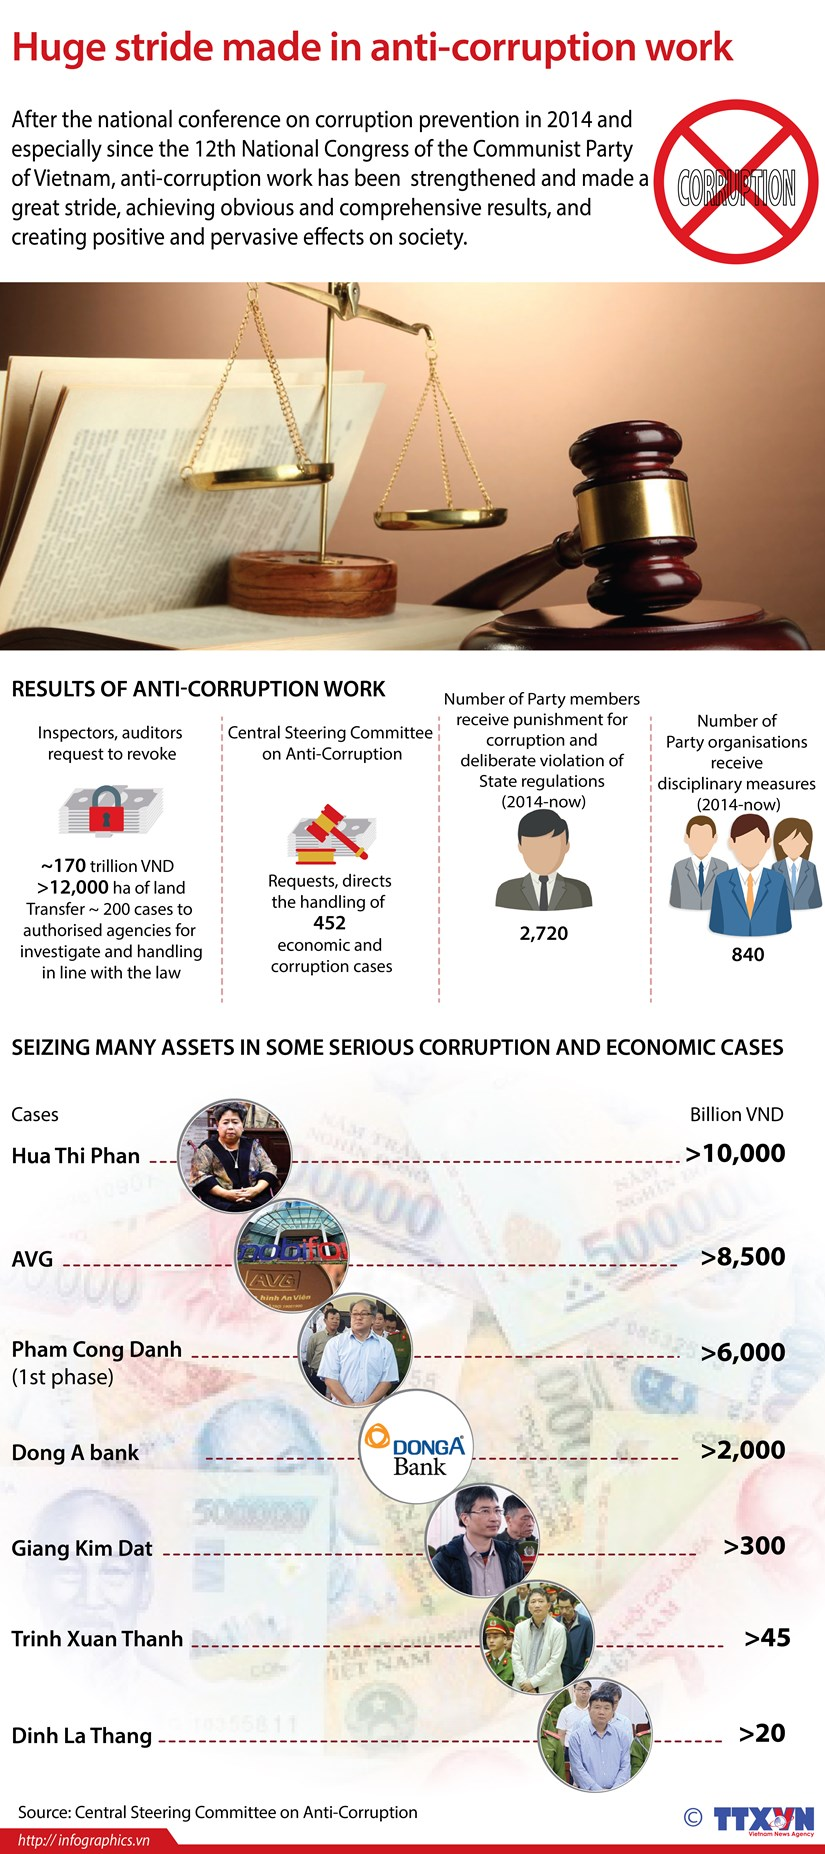 Huge stride made in anti-corruption work hinh anh 1